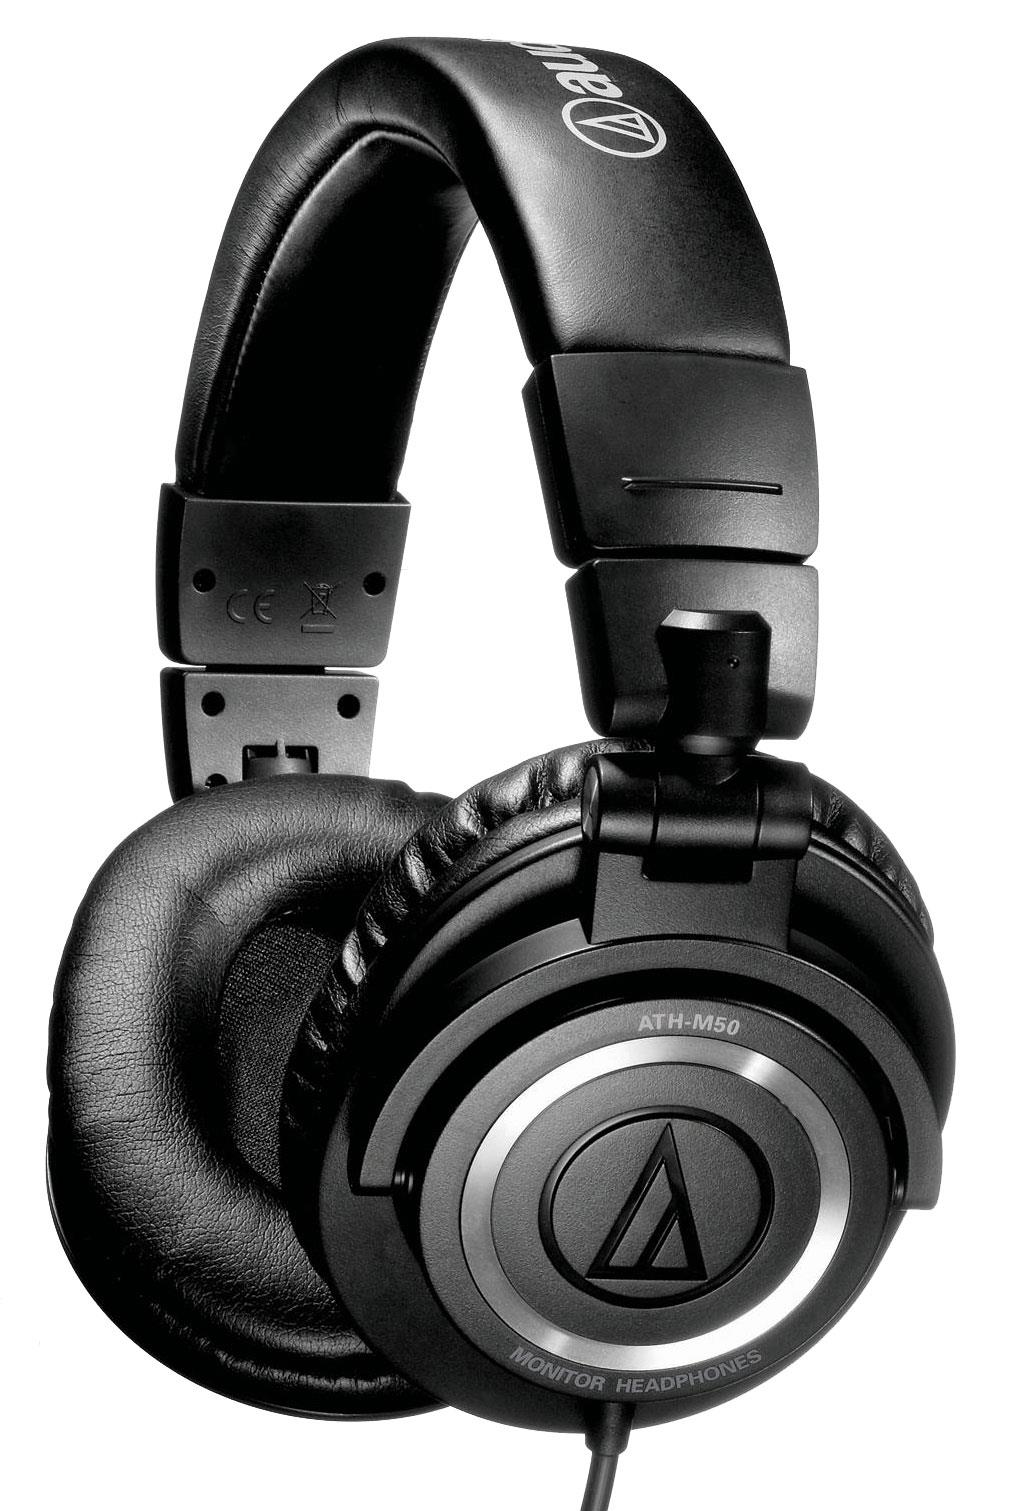 audio-technica-ath-m50-stereo-studio-headphones.jpg